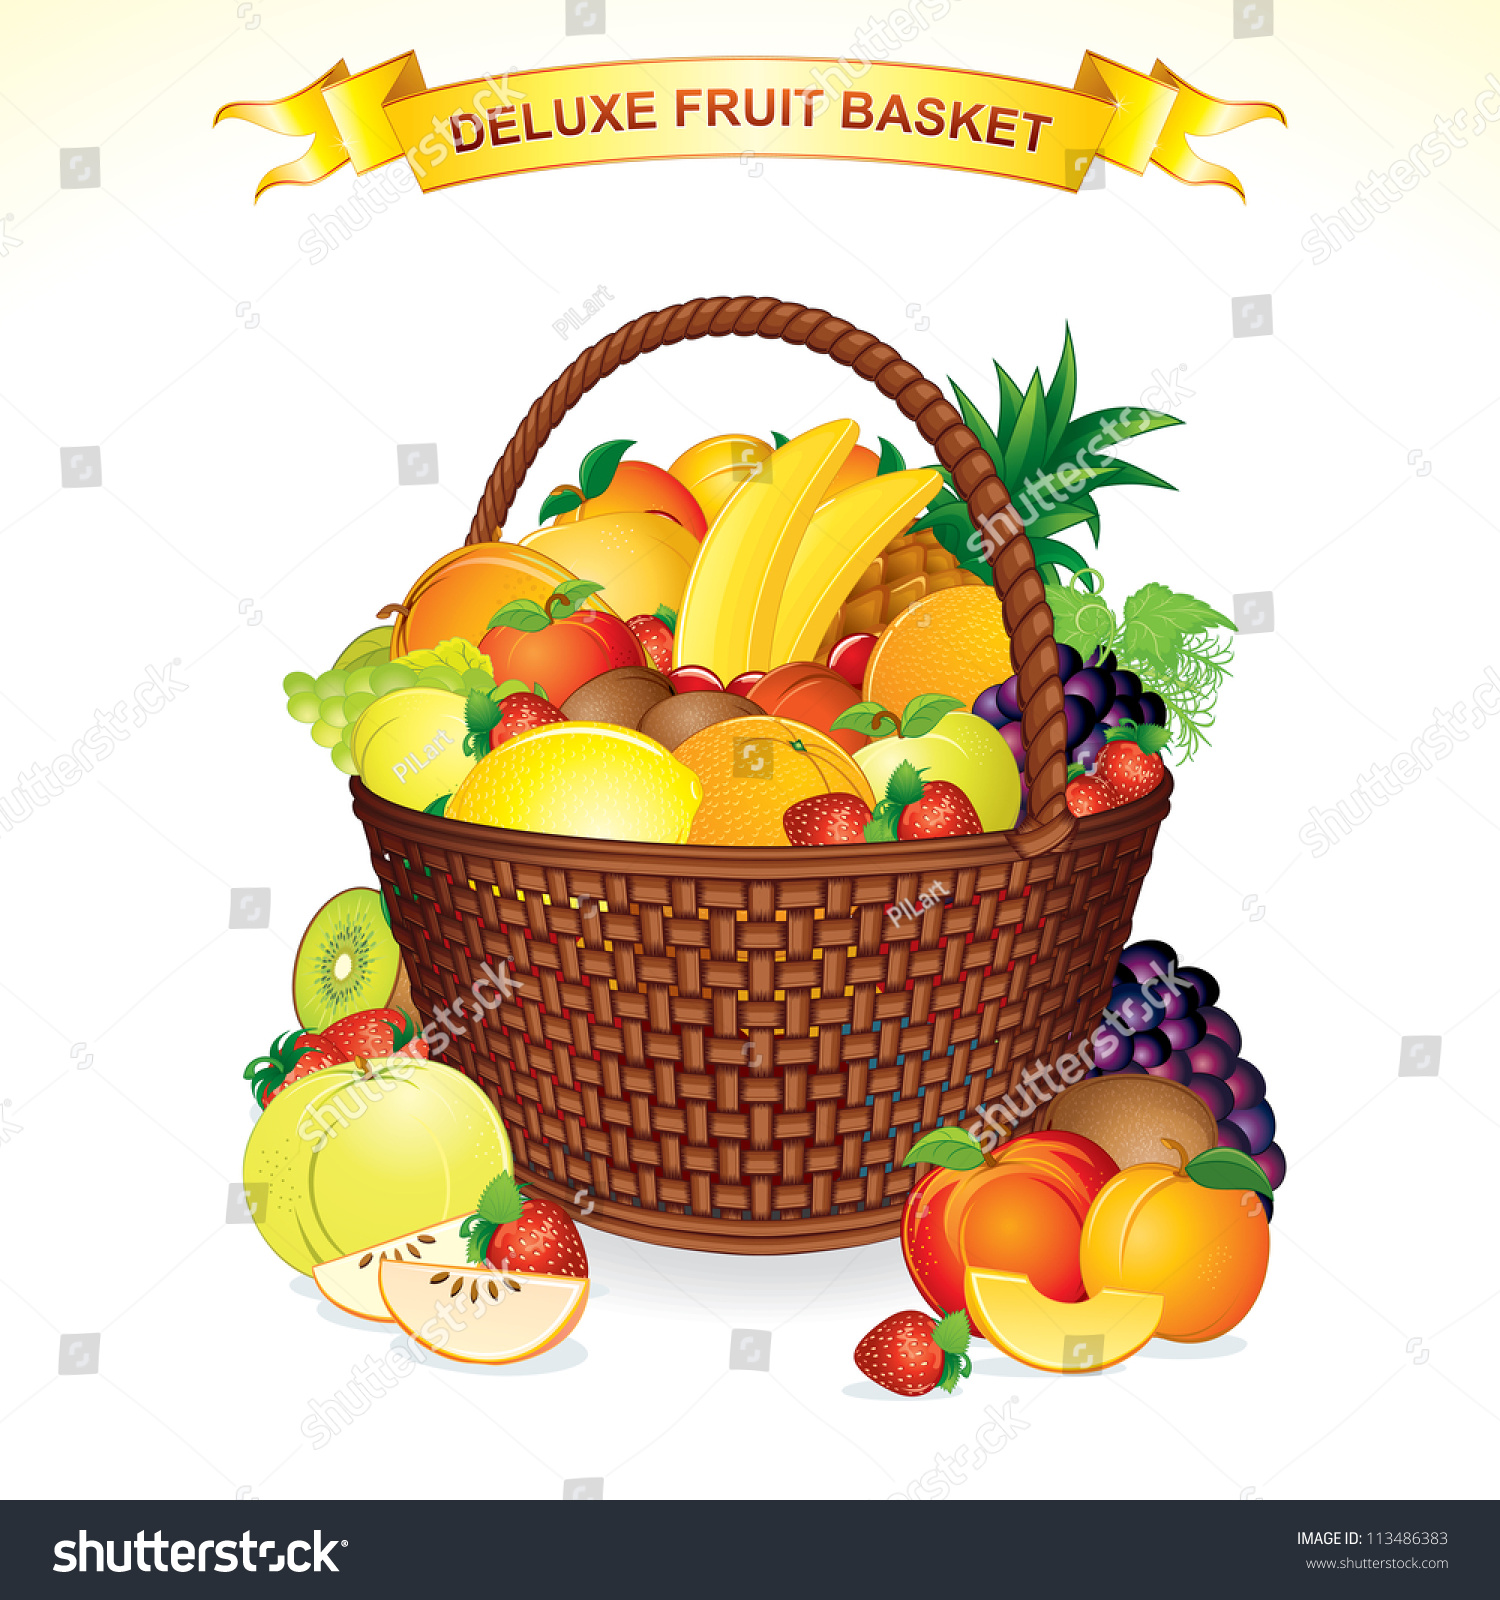 Fruit Basket Vector. A Woven Basket Filled With Ripe